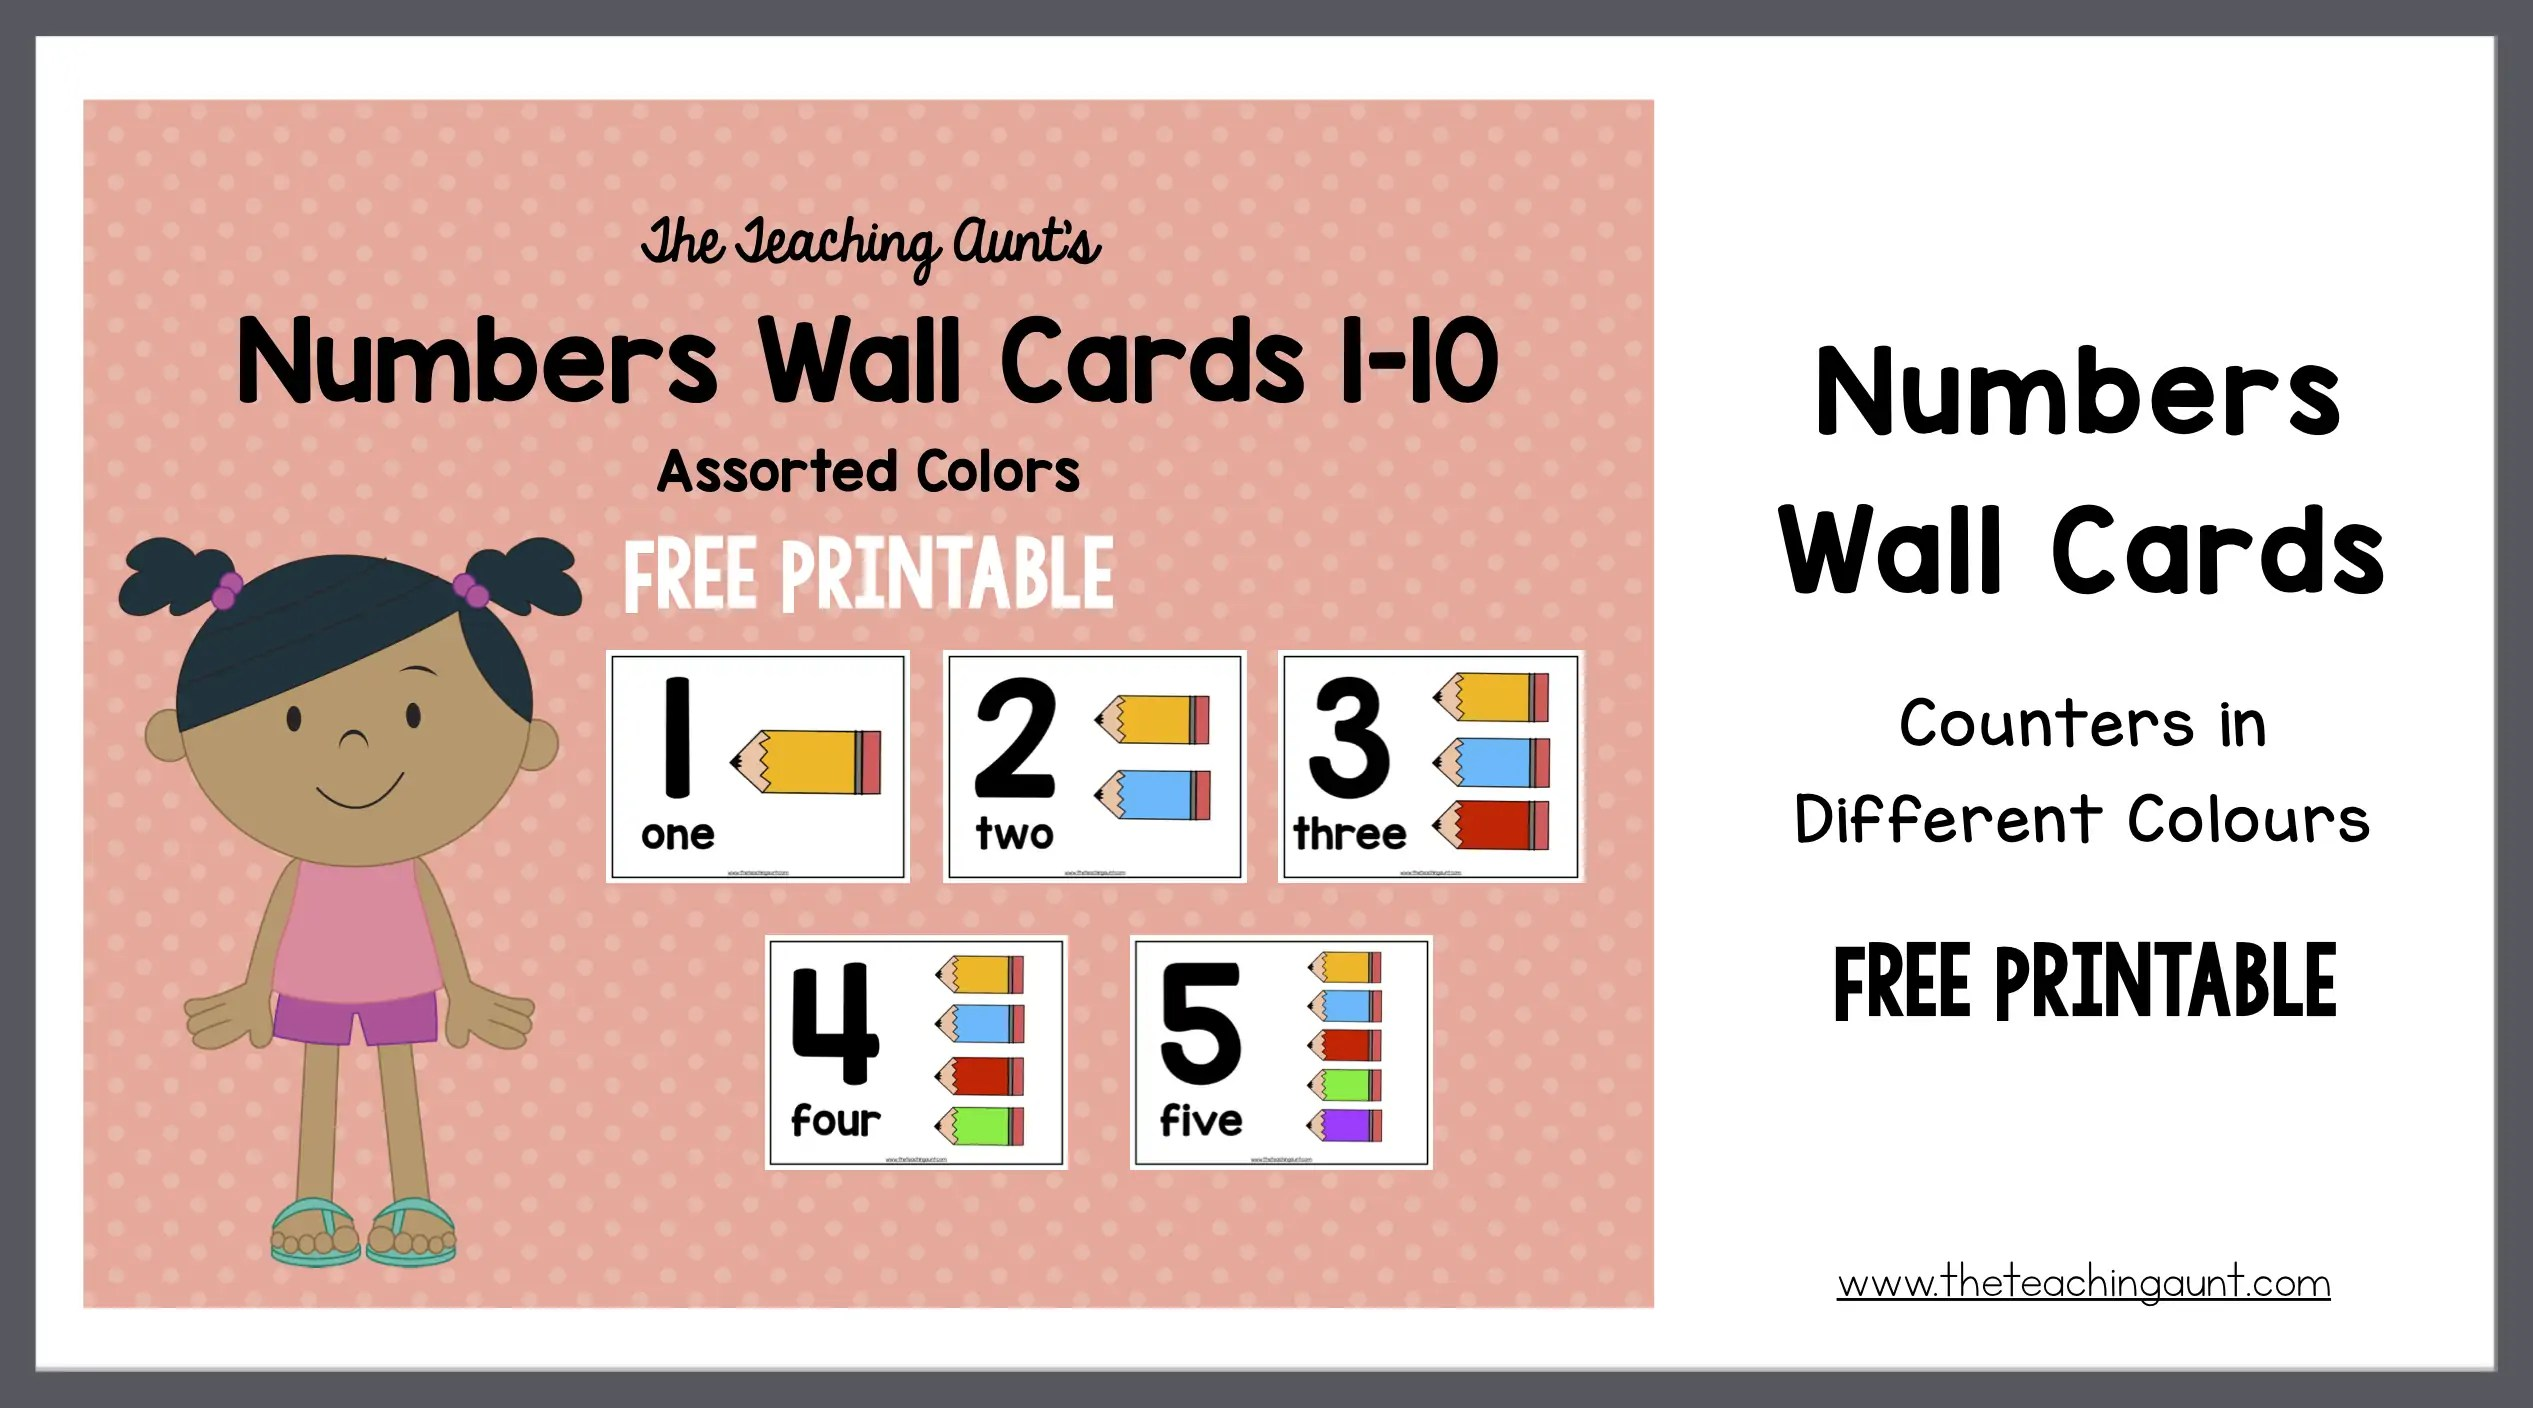 This is a picture of Free Printable Numbers 1-10 pertaining to full page